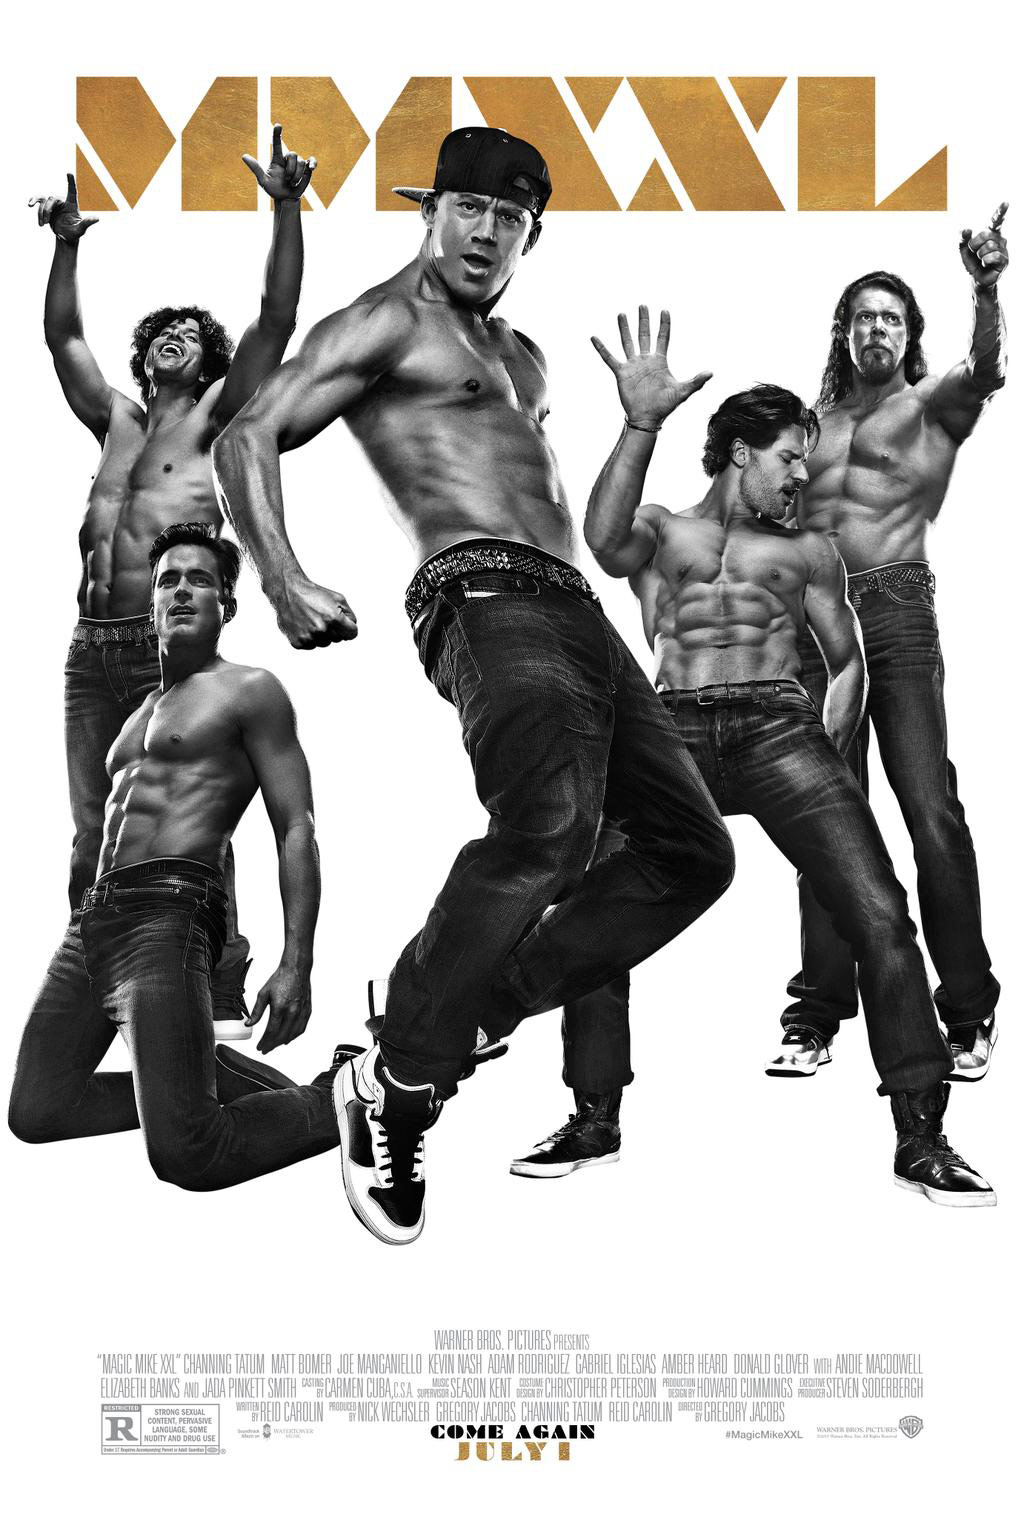 photo new magic mike xxl movie poster with 30 pack abs. Black Bedroom Furniture Sets. Home Design Ideas